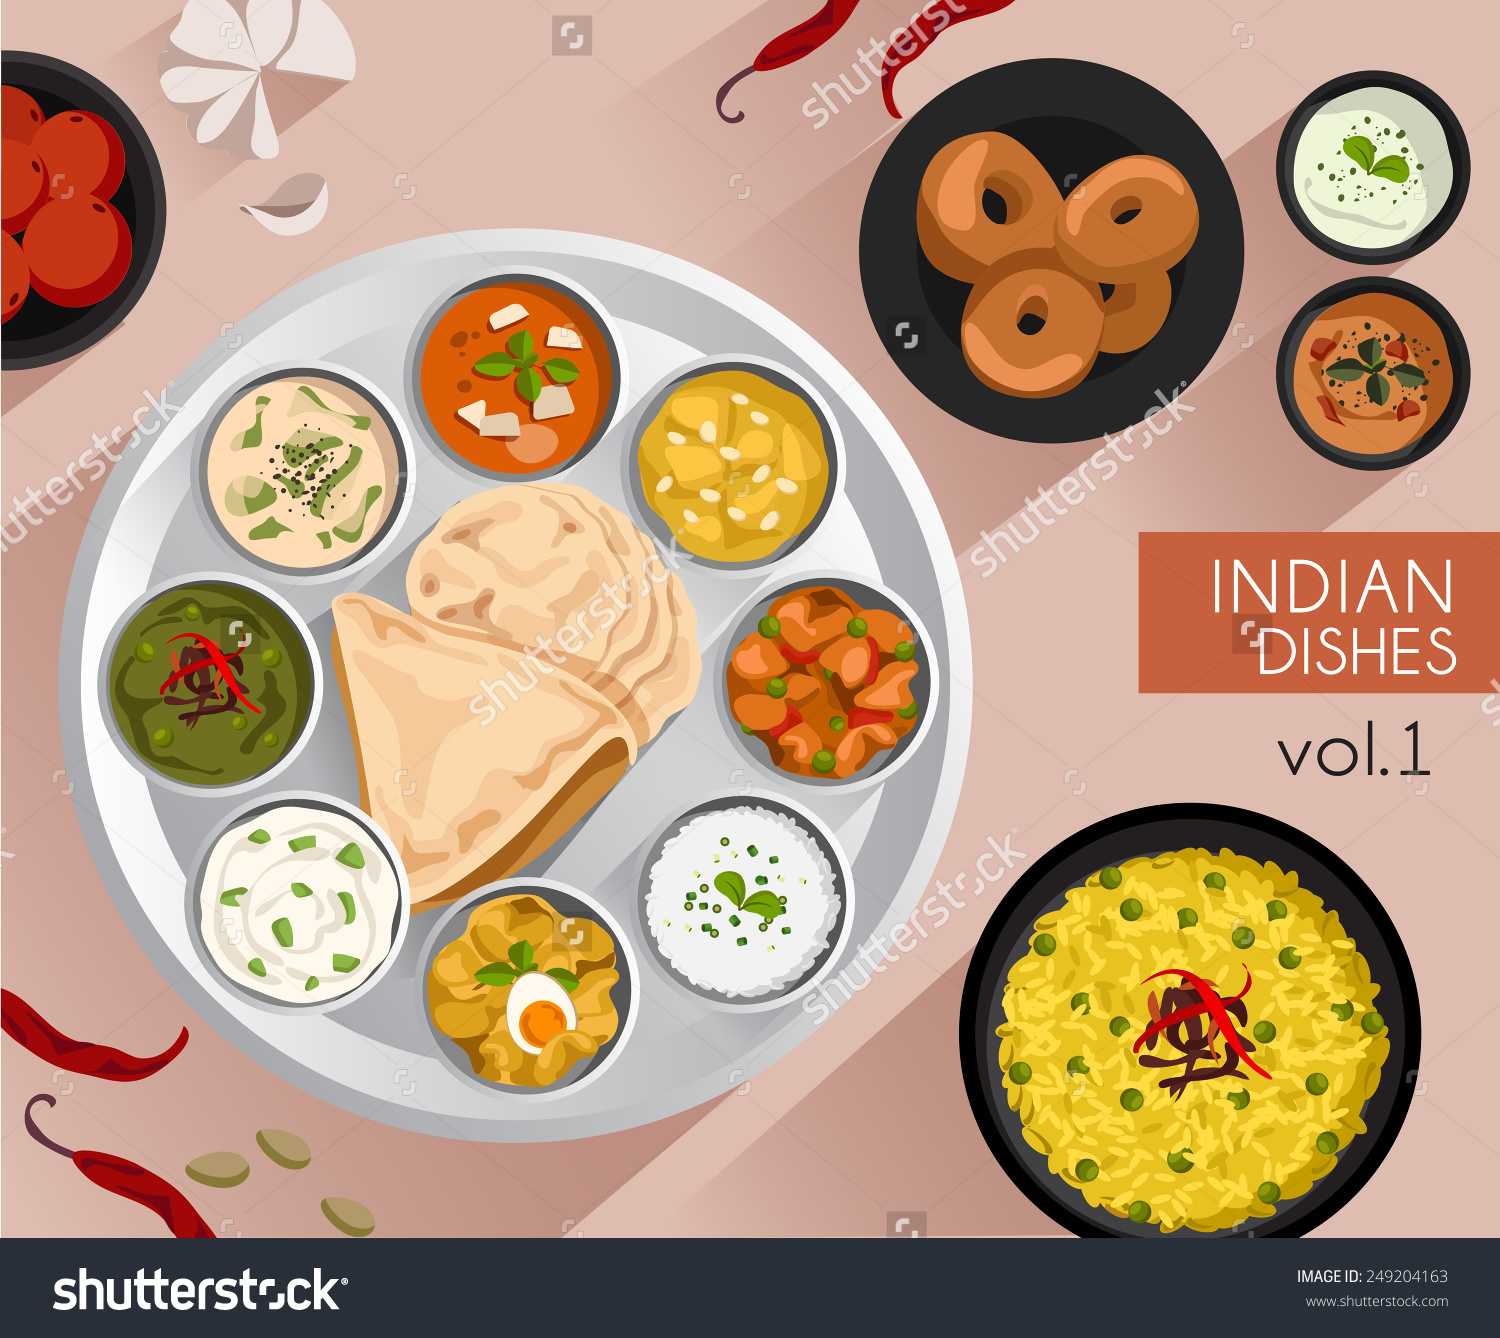 indian food plate clipart 9 | Clipart Station for Plate With Food Clipart  131fsj